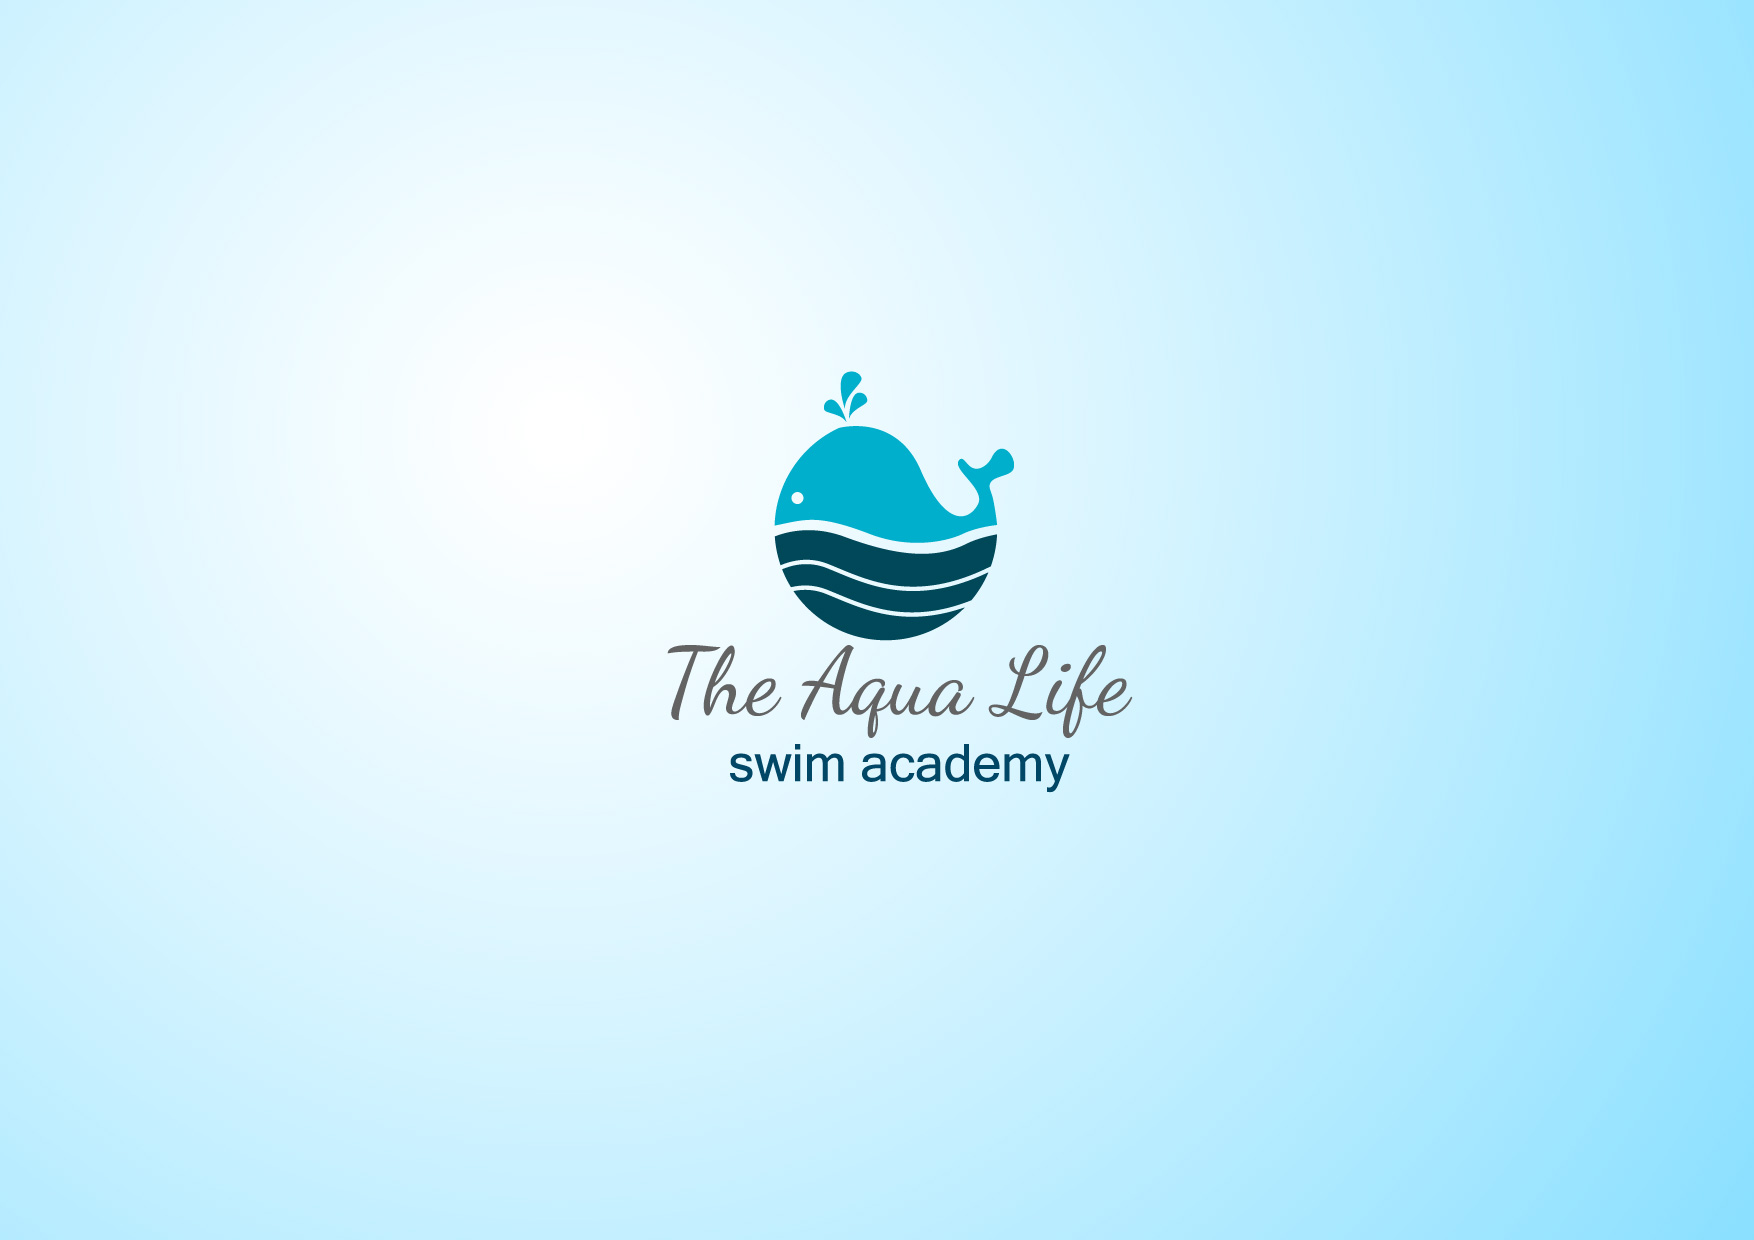 Logo Design by Osi Indra - Entry No. 59 in the Logo Design Contest Artistic Logo Design Wanted for The Aqua Life Swim Academy.